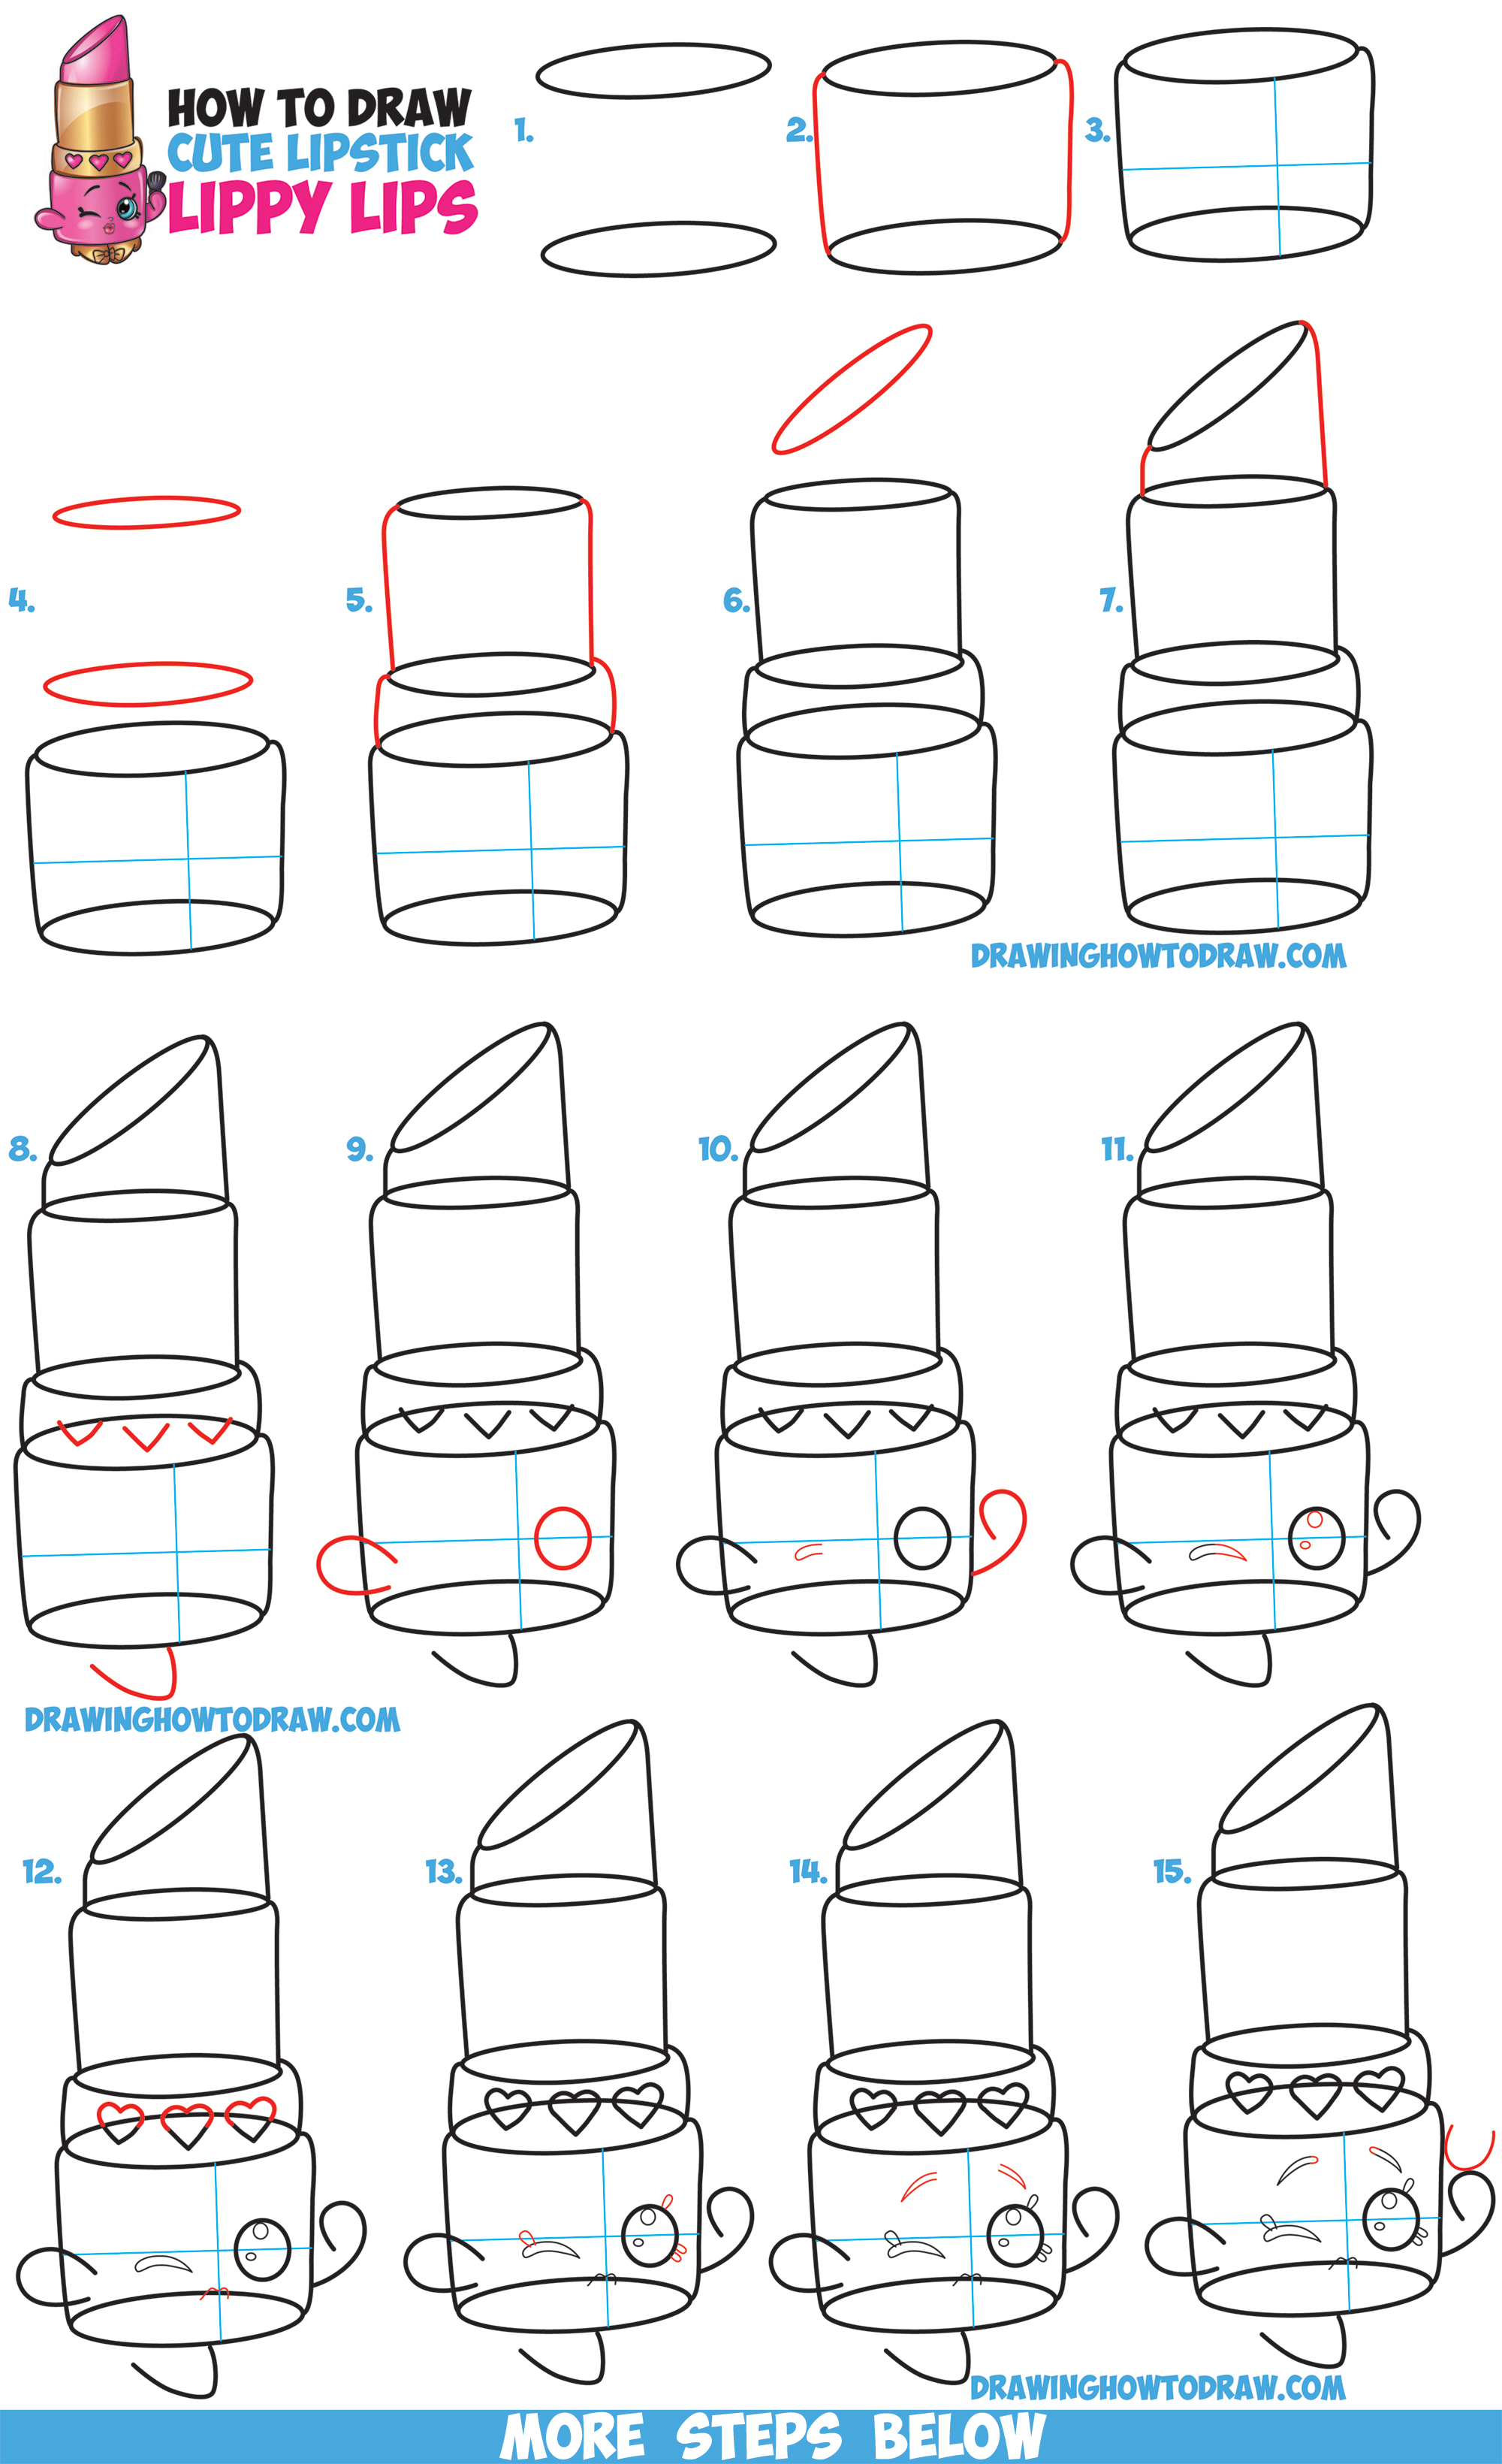 Charming How To Draw Lippy Lips / Cute Lipstick From Shopkins   Easy Step By Step  Drawing